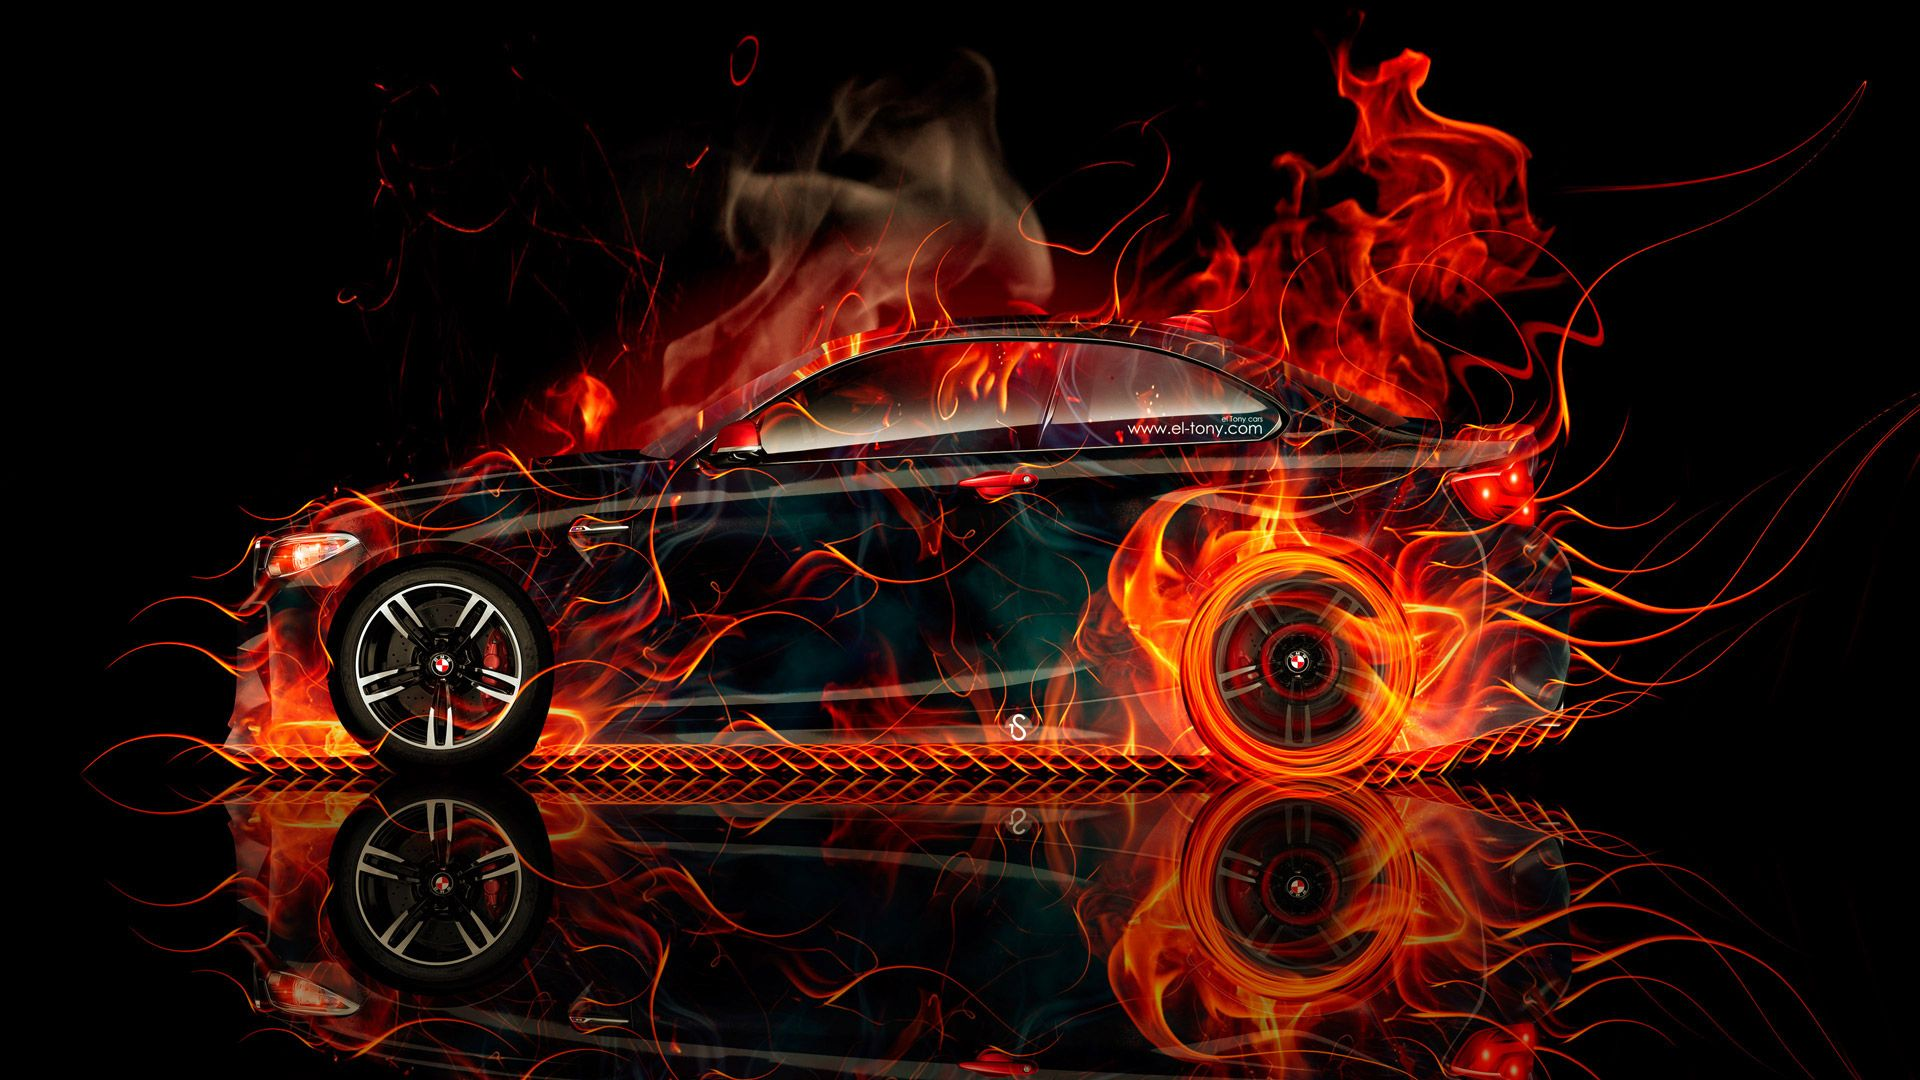 Flame Abstract Image Bmw M2 Coupe Side Super Fire Flame Abstract Car 2016 Creative Red Bmw Bmw M2 Coupe